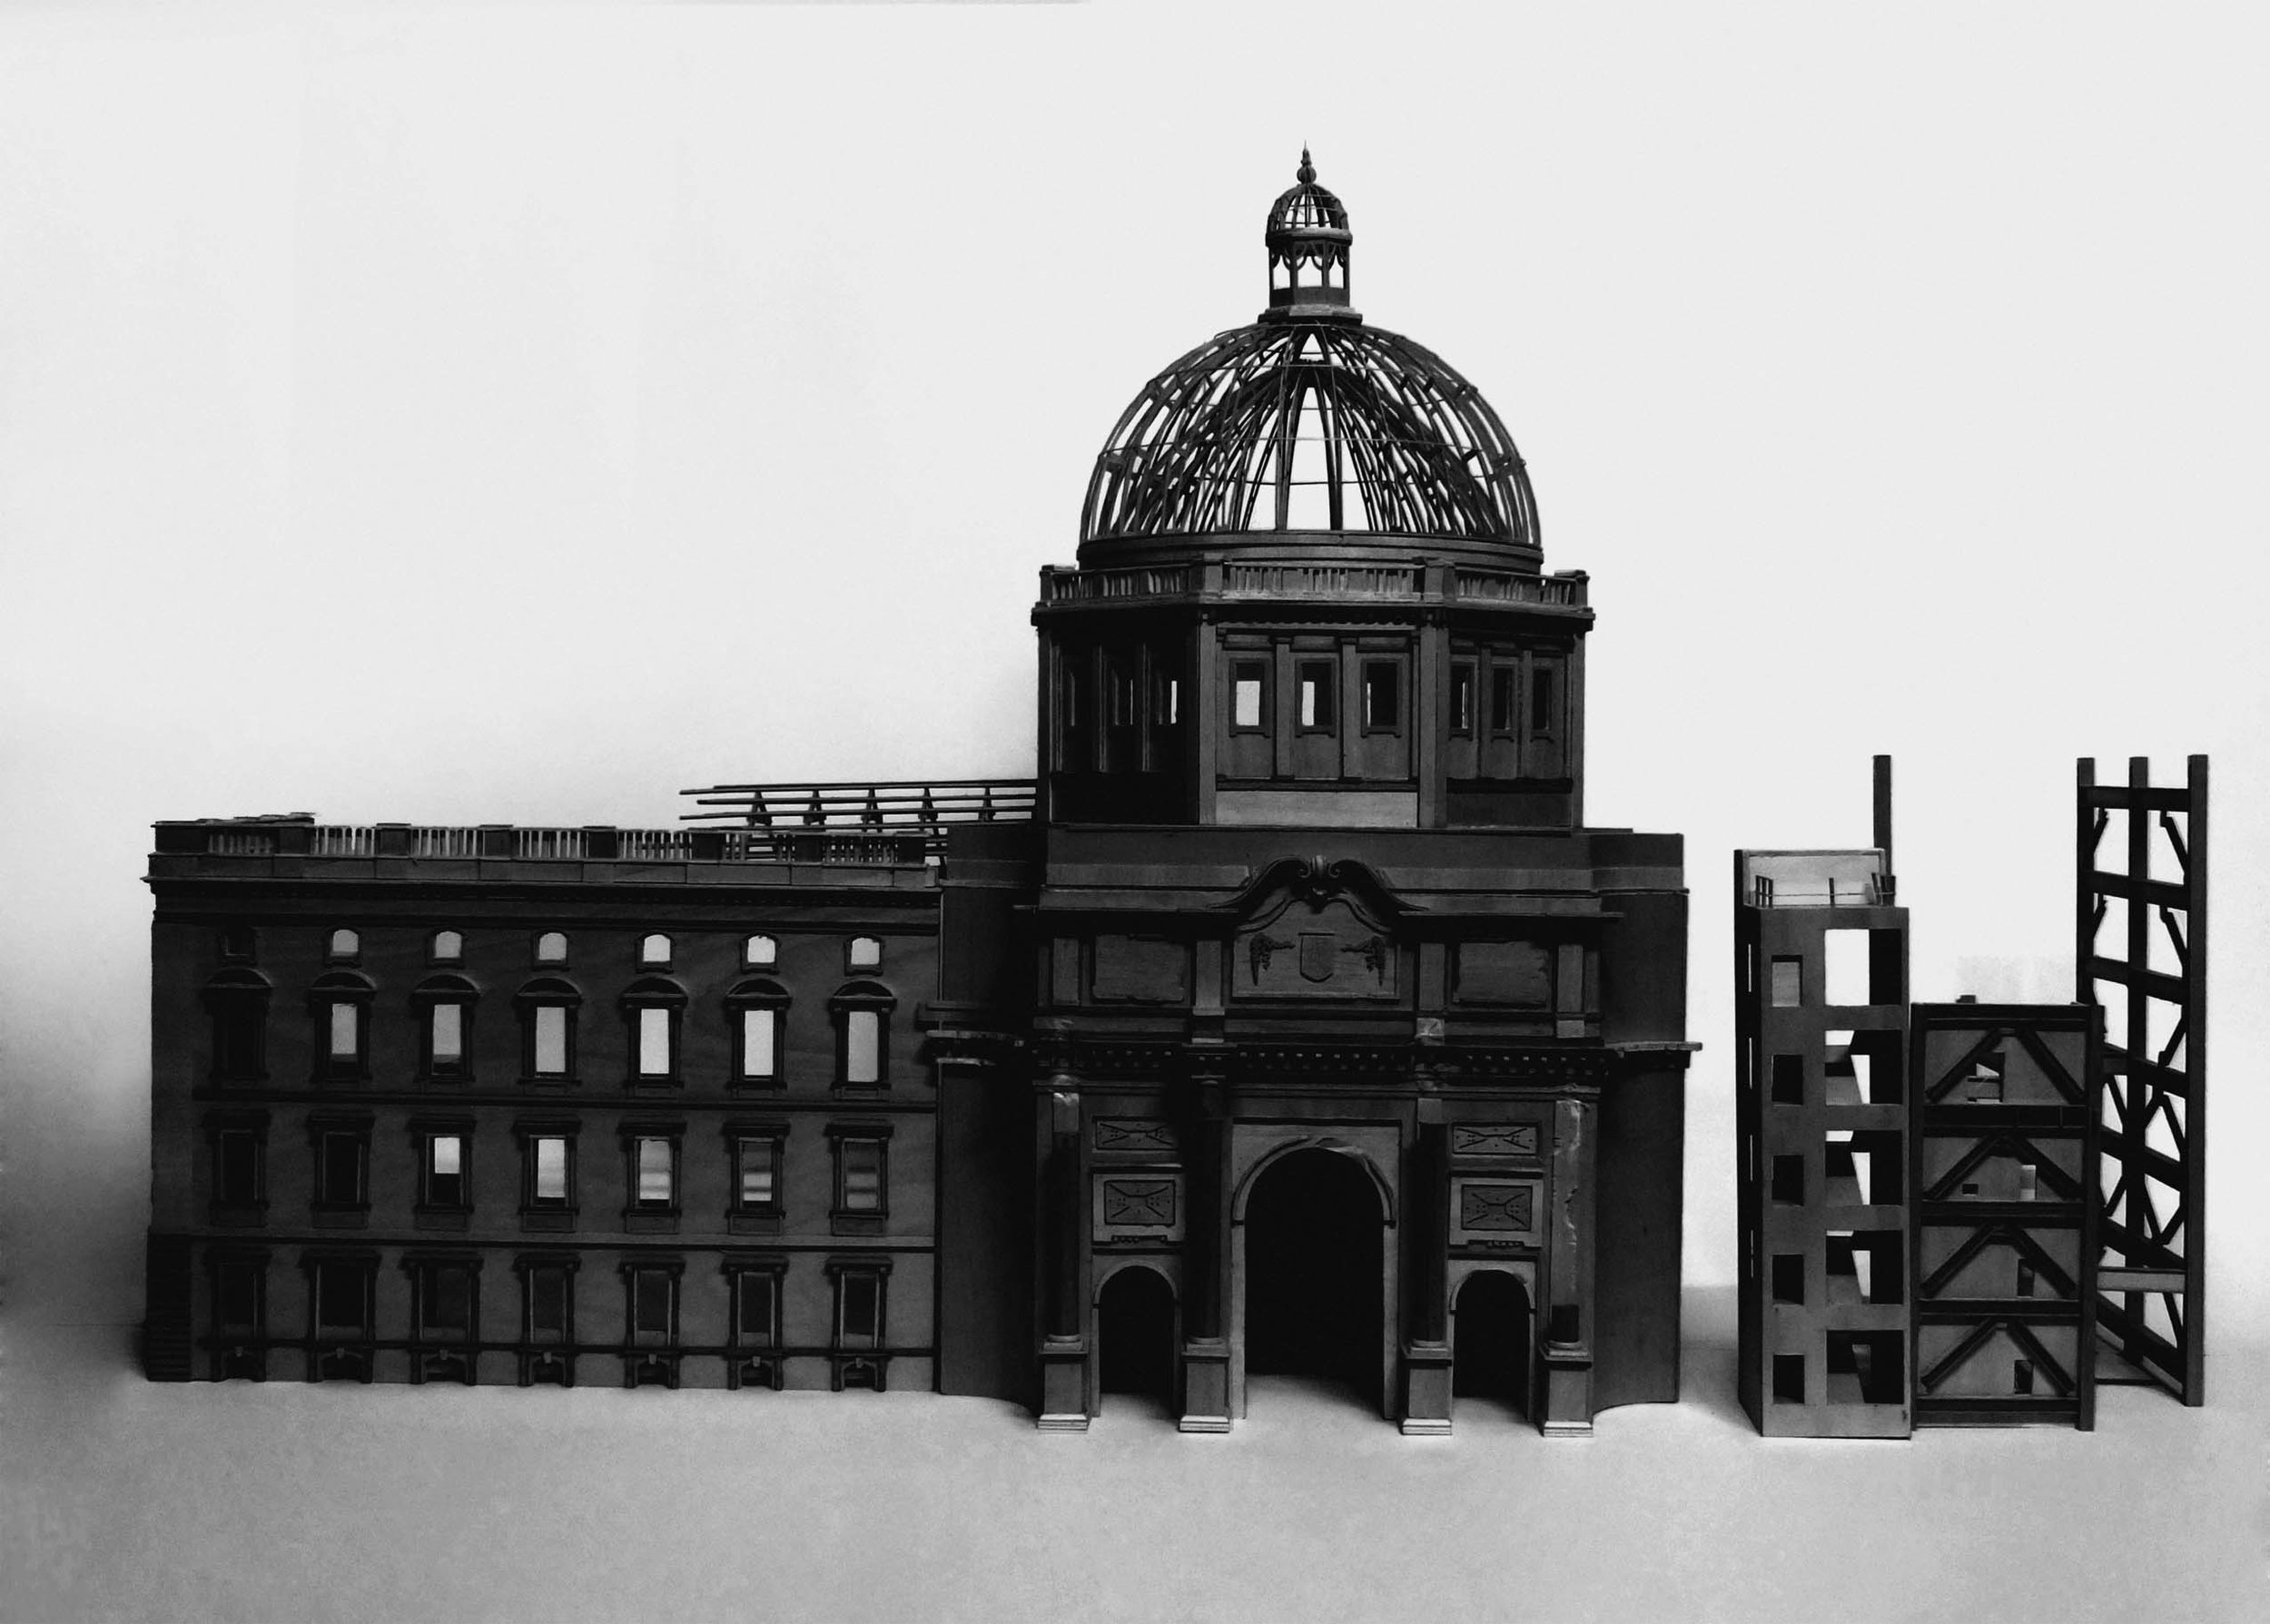 Simon MacEwan, What is lost outwardly must be won inwardly –Berliner Stadtschloss 1702-1950, Palast der Republic 1976-2008, 2014 , plywood, wood, travertine, steel, glass and acrylic